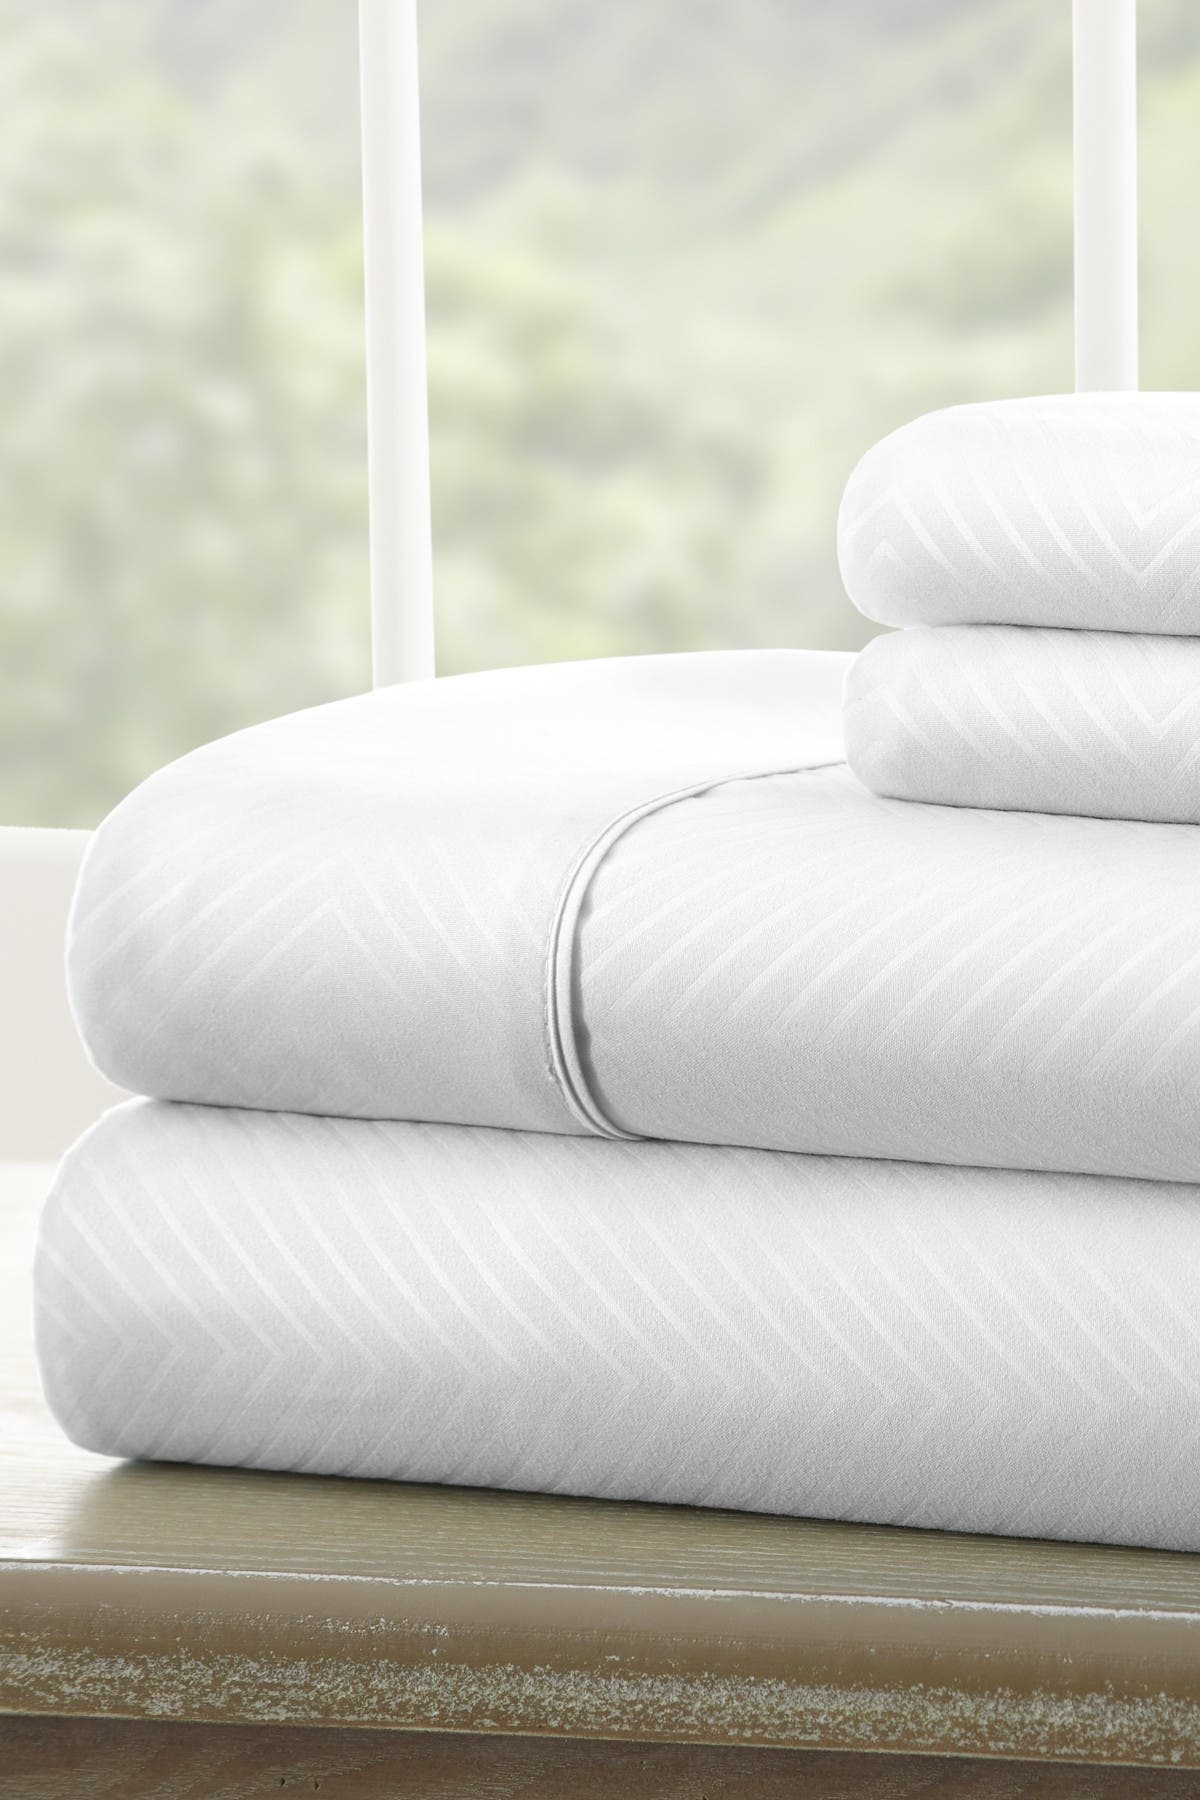 Image of IENJOY HOME Twin Hotel Collection Premium Ultra Soft 3-Piece Chevron Bed Sheet Set - White